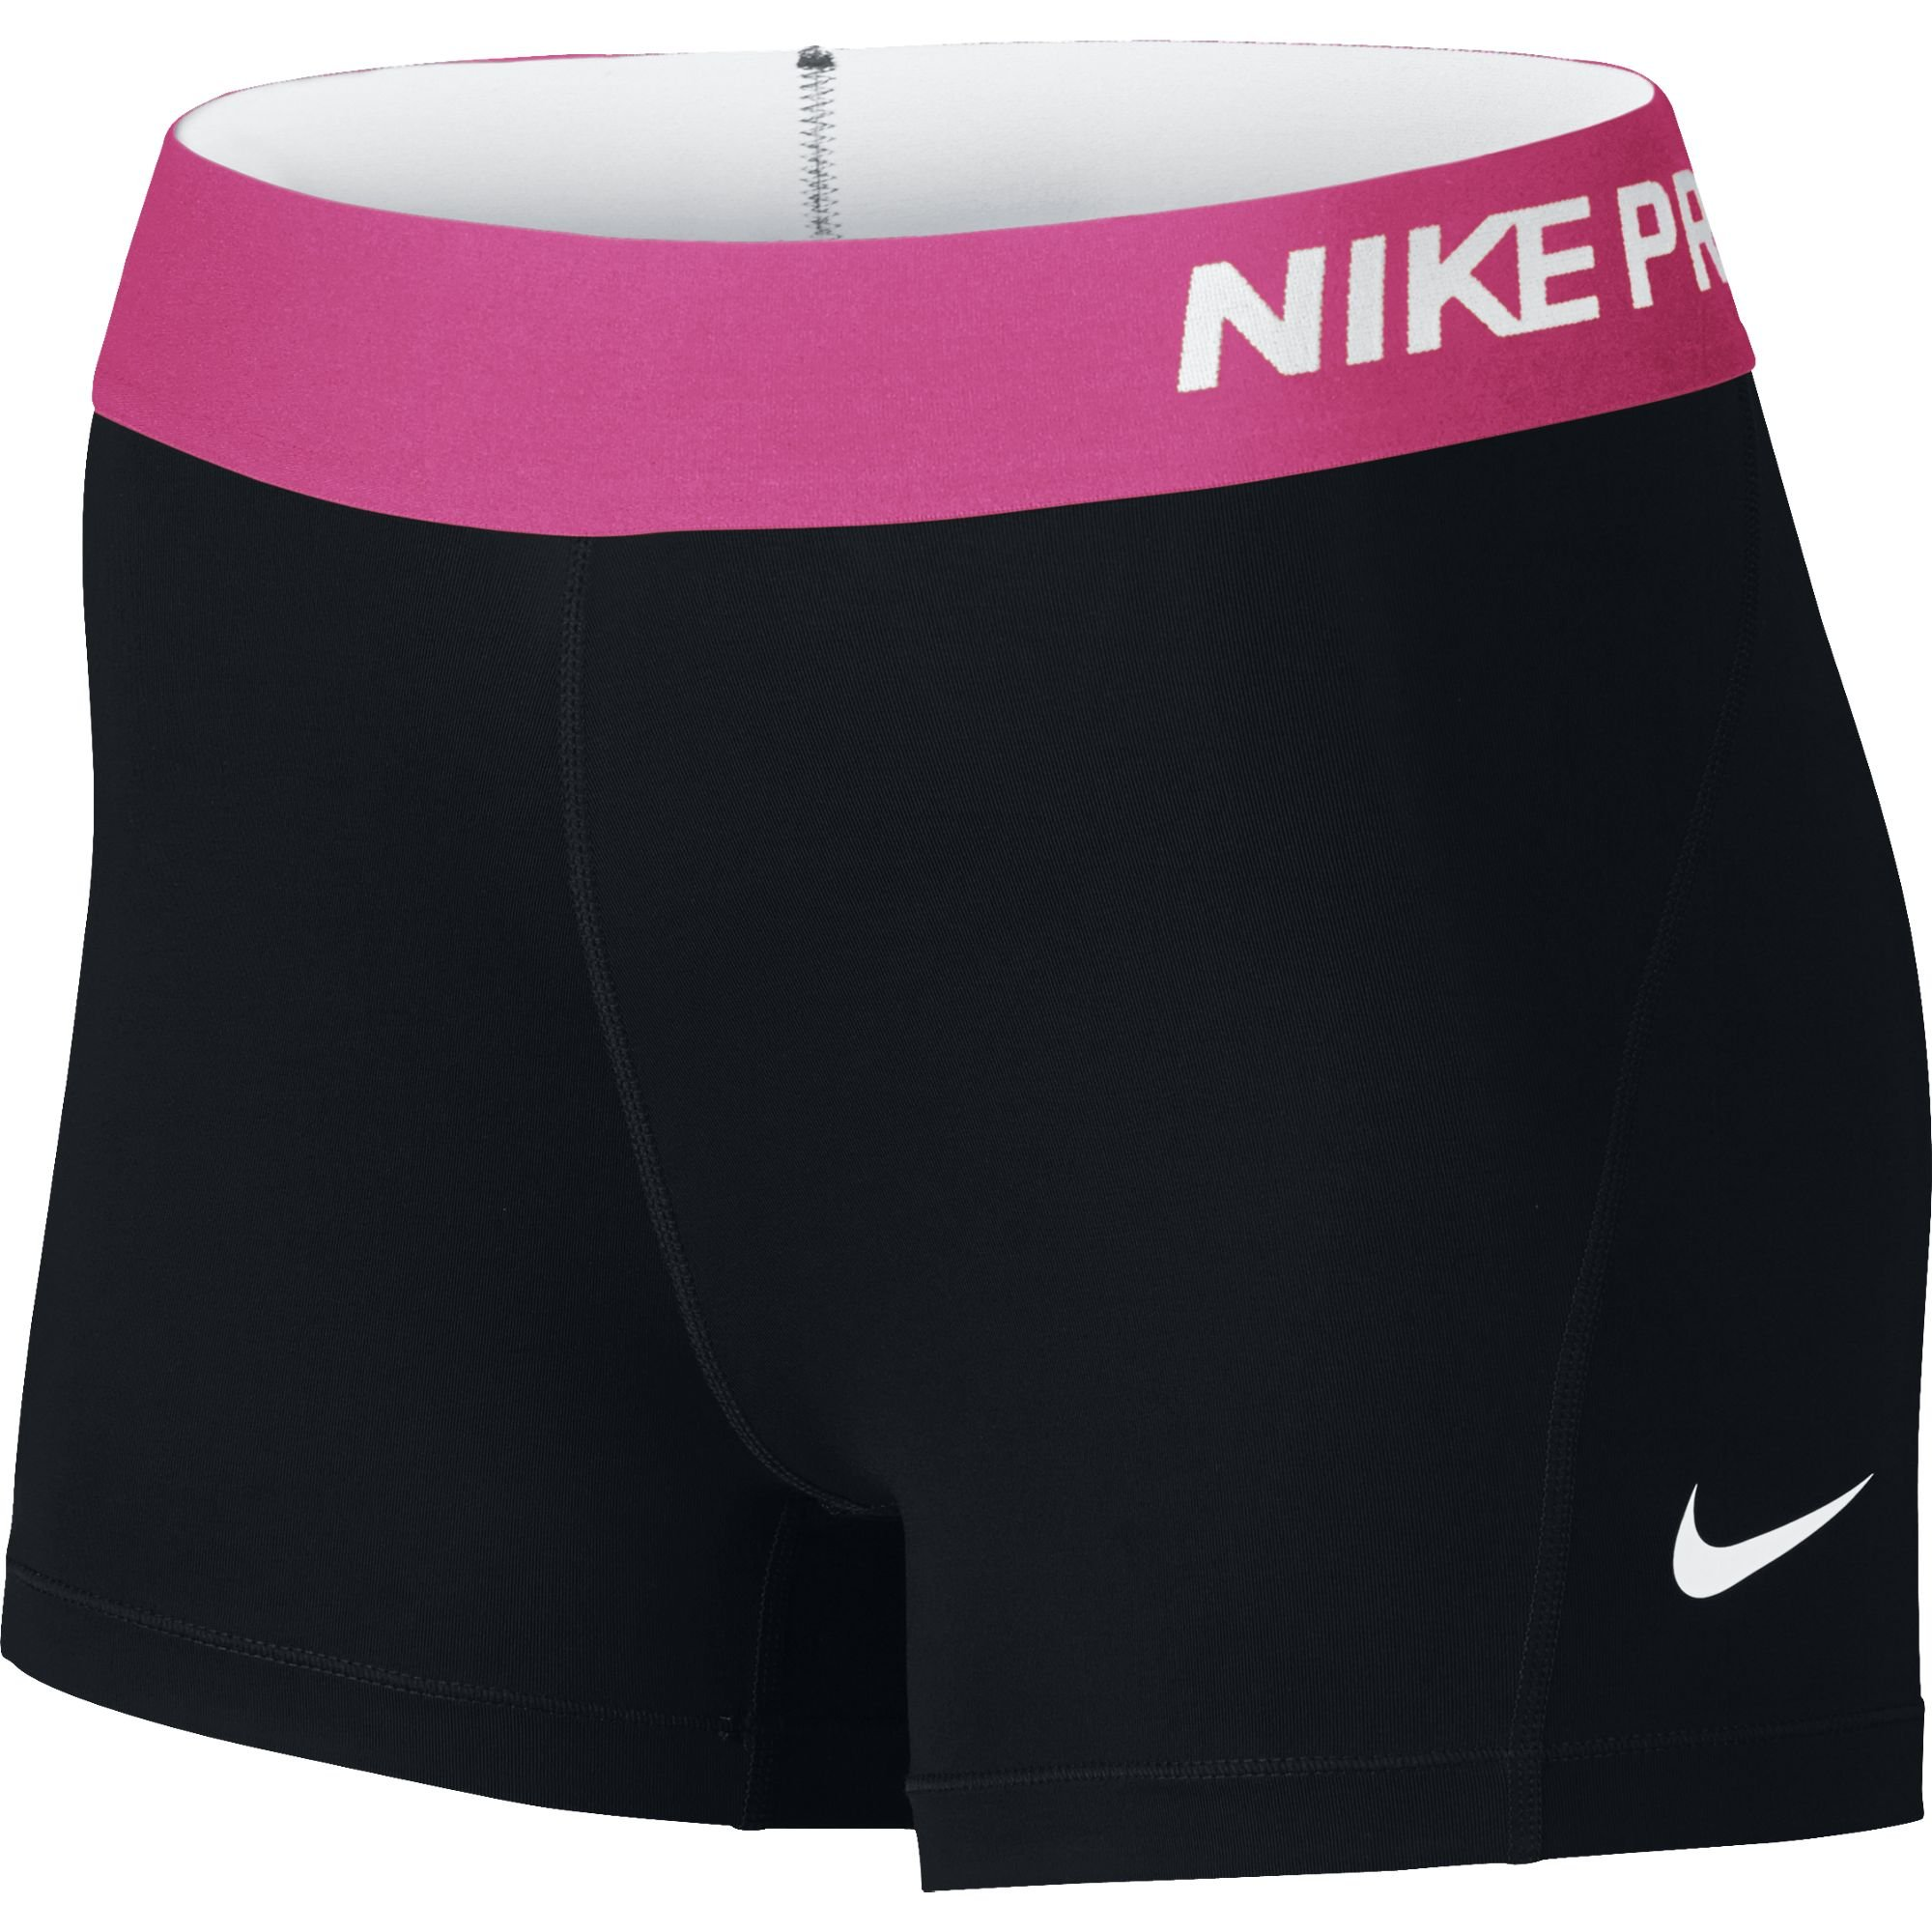 Nike Women's Pro Cool 3-Inch Training Shorts (Black/Vivid Pink/White/X-Small)